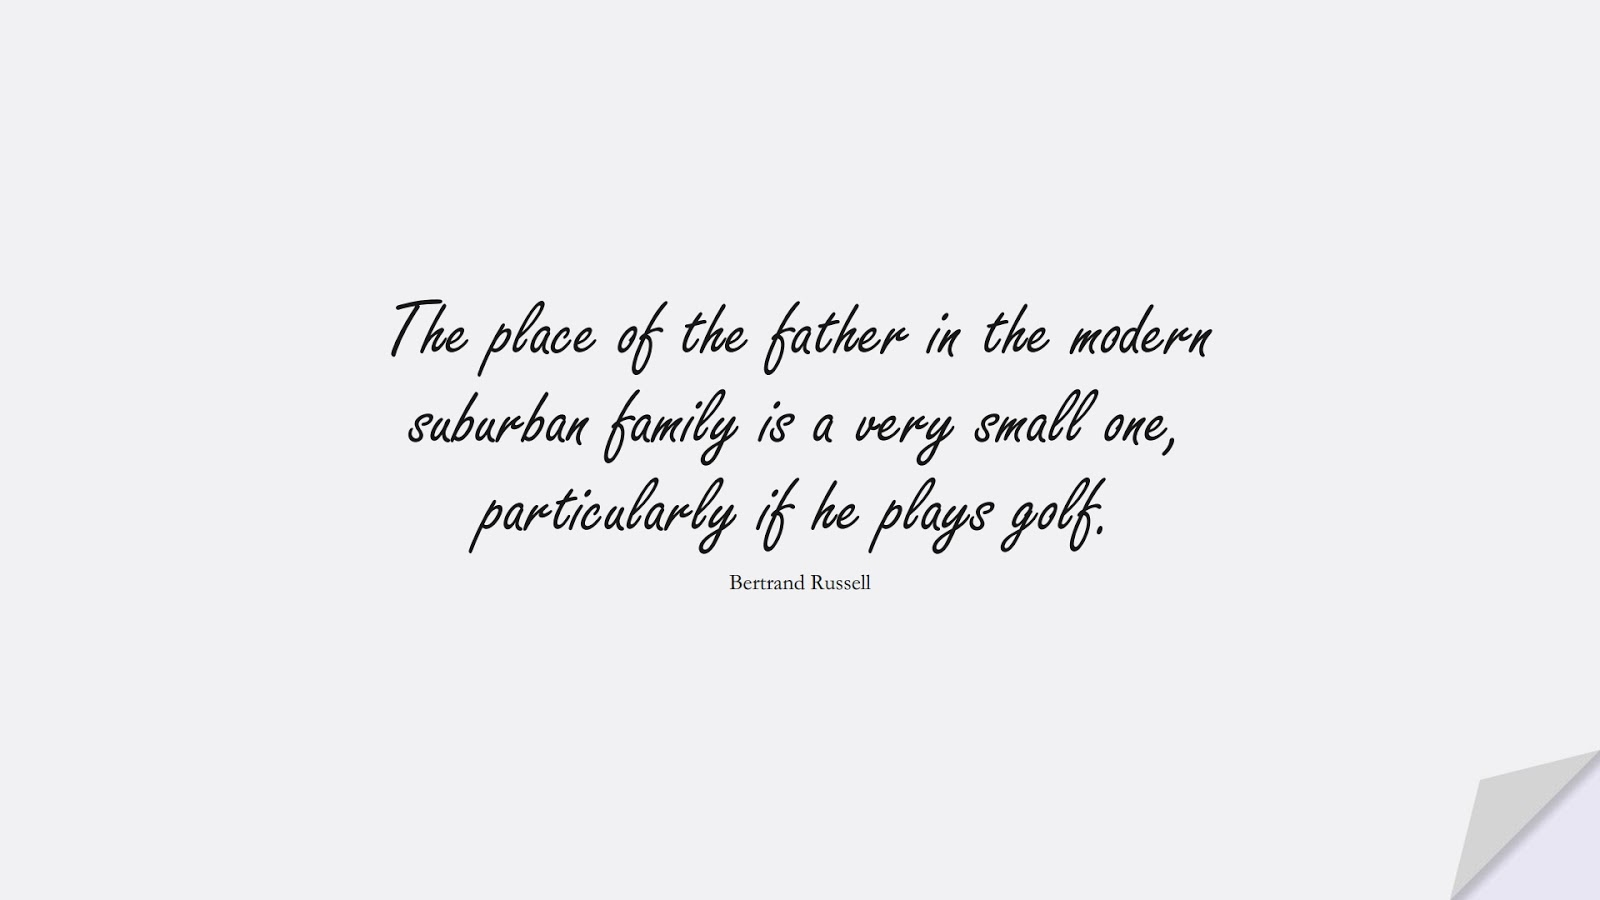 The place of the father in the modern suburban family is a very small one, particularly if he plays golf. (Bertrand Russell);  #FamilyQuotes